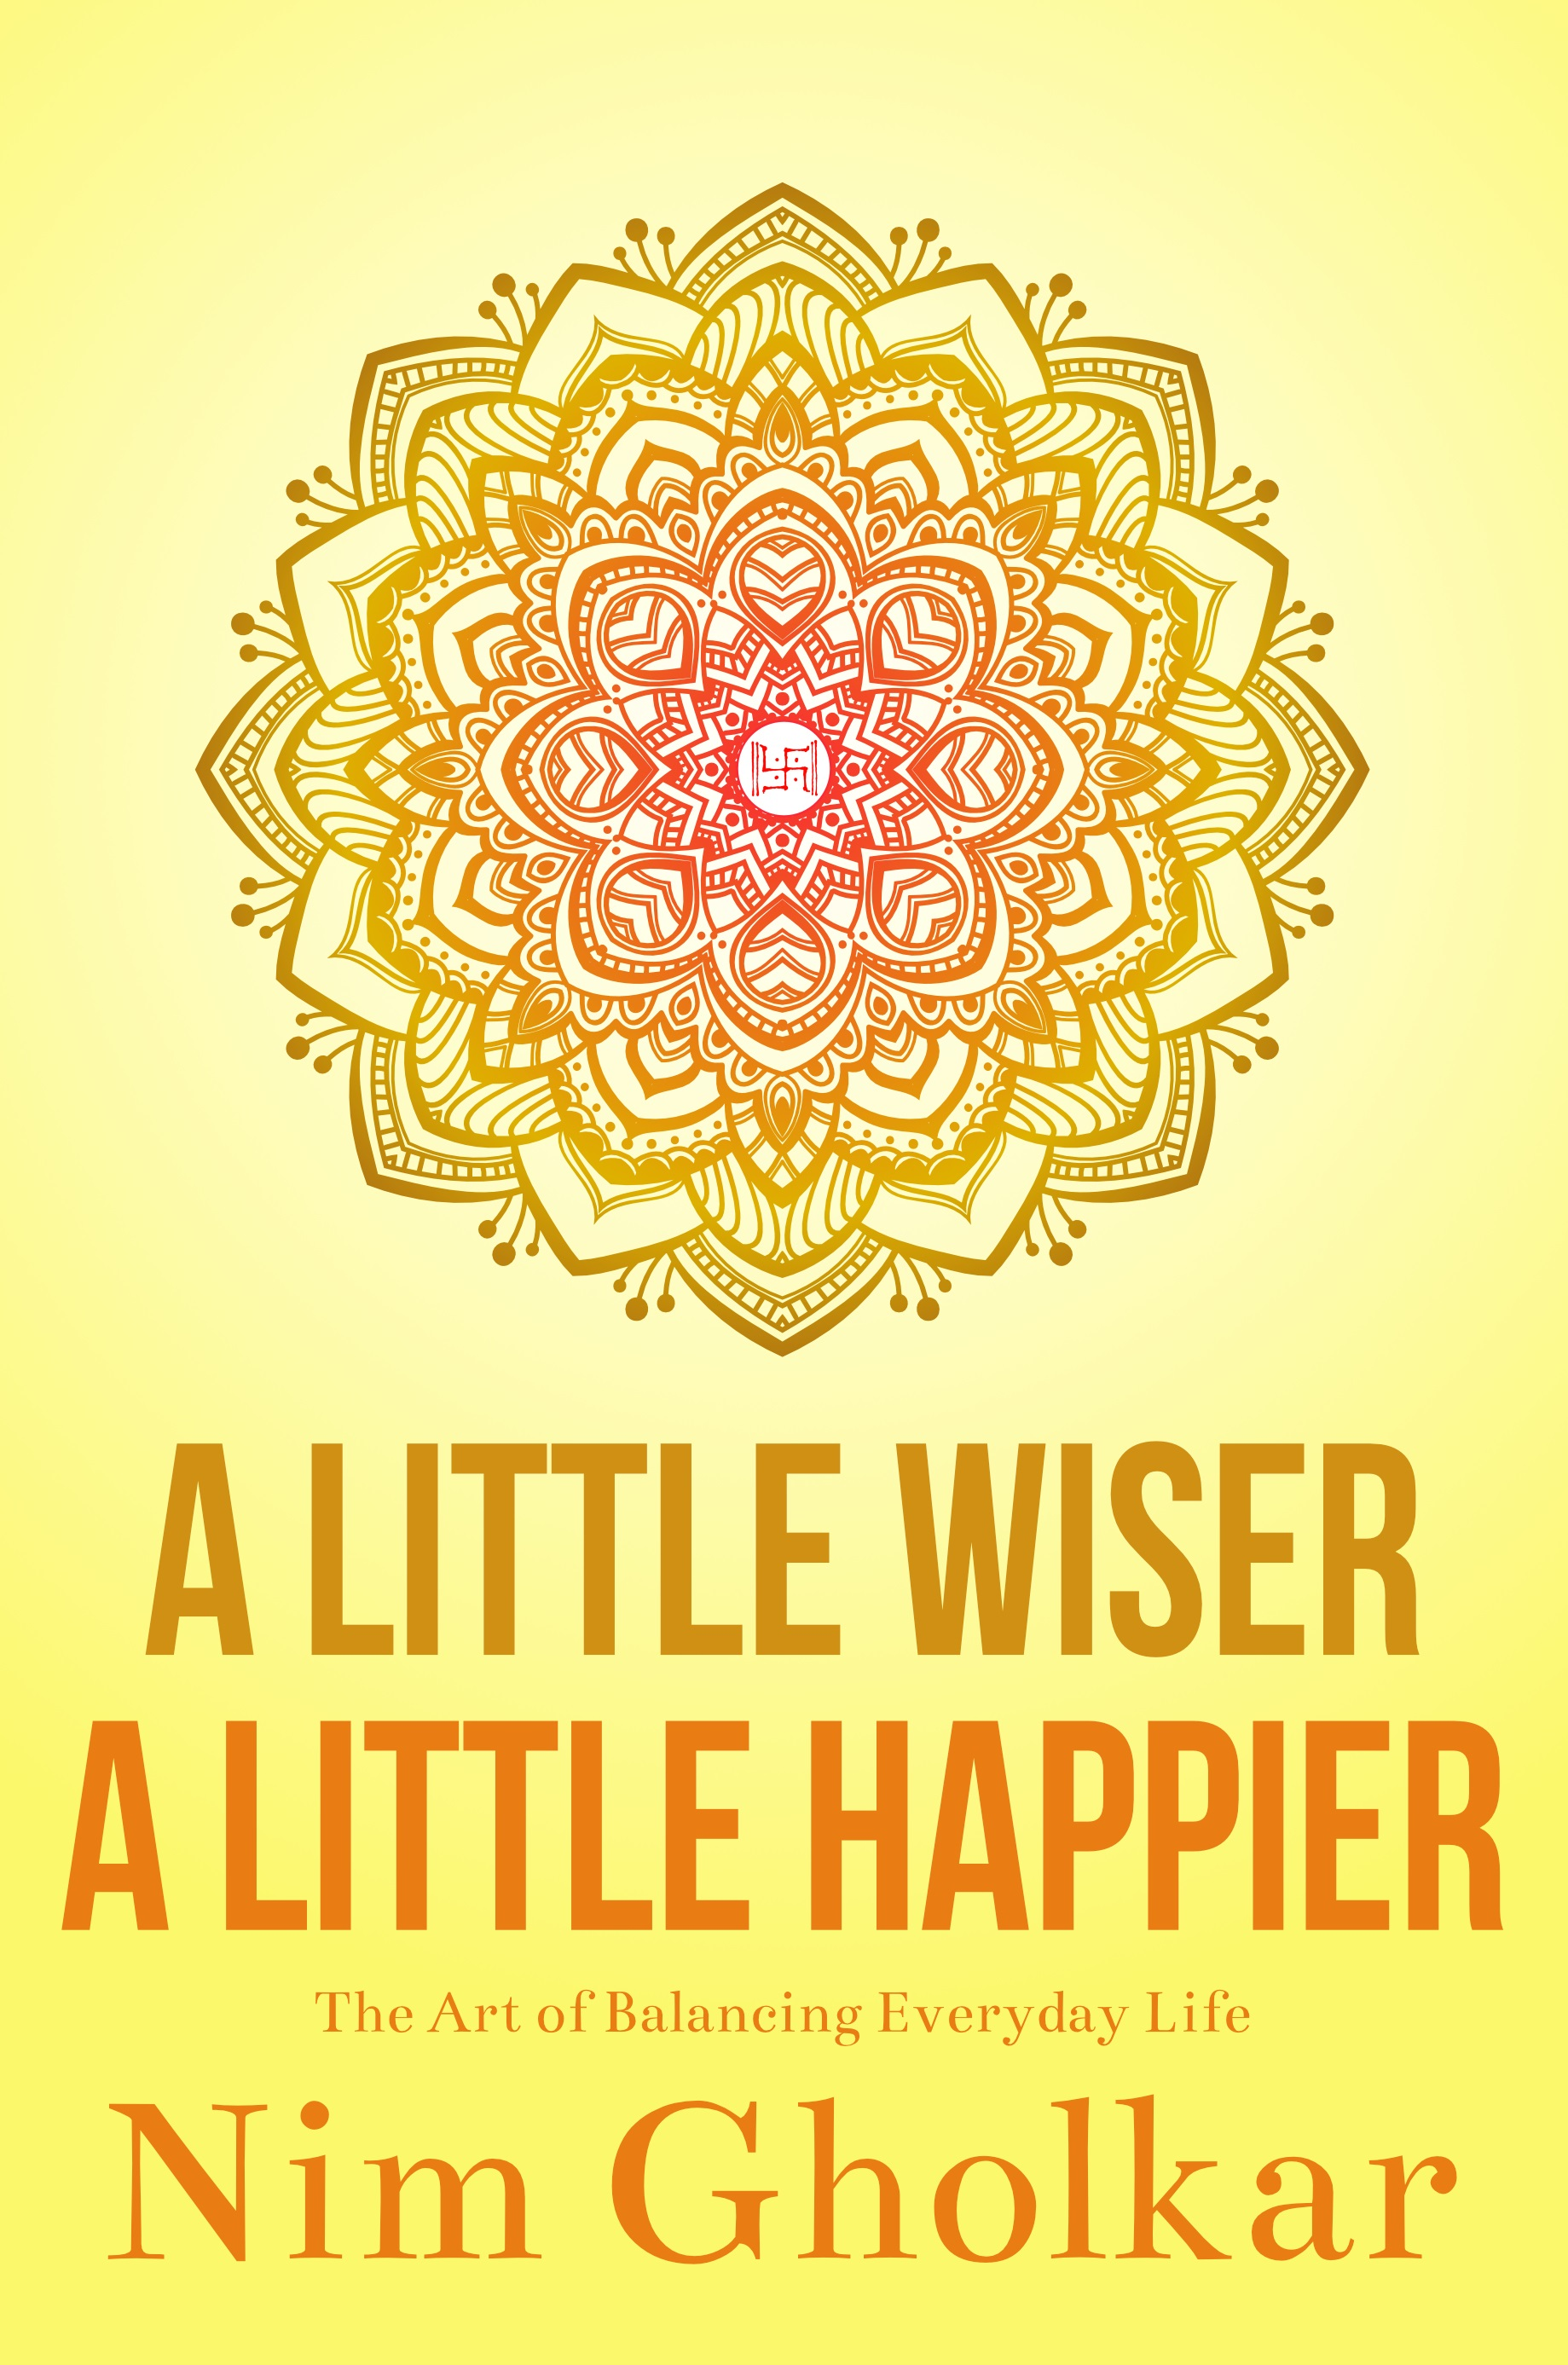 A Little Wiser A Little Happier_ebook